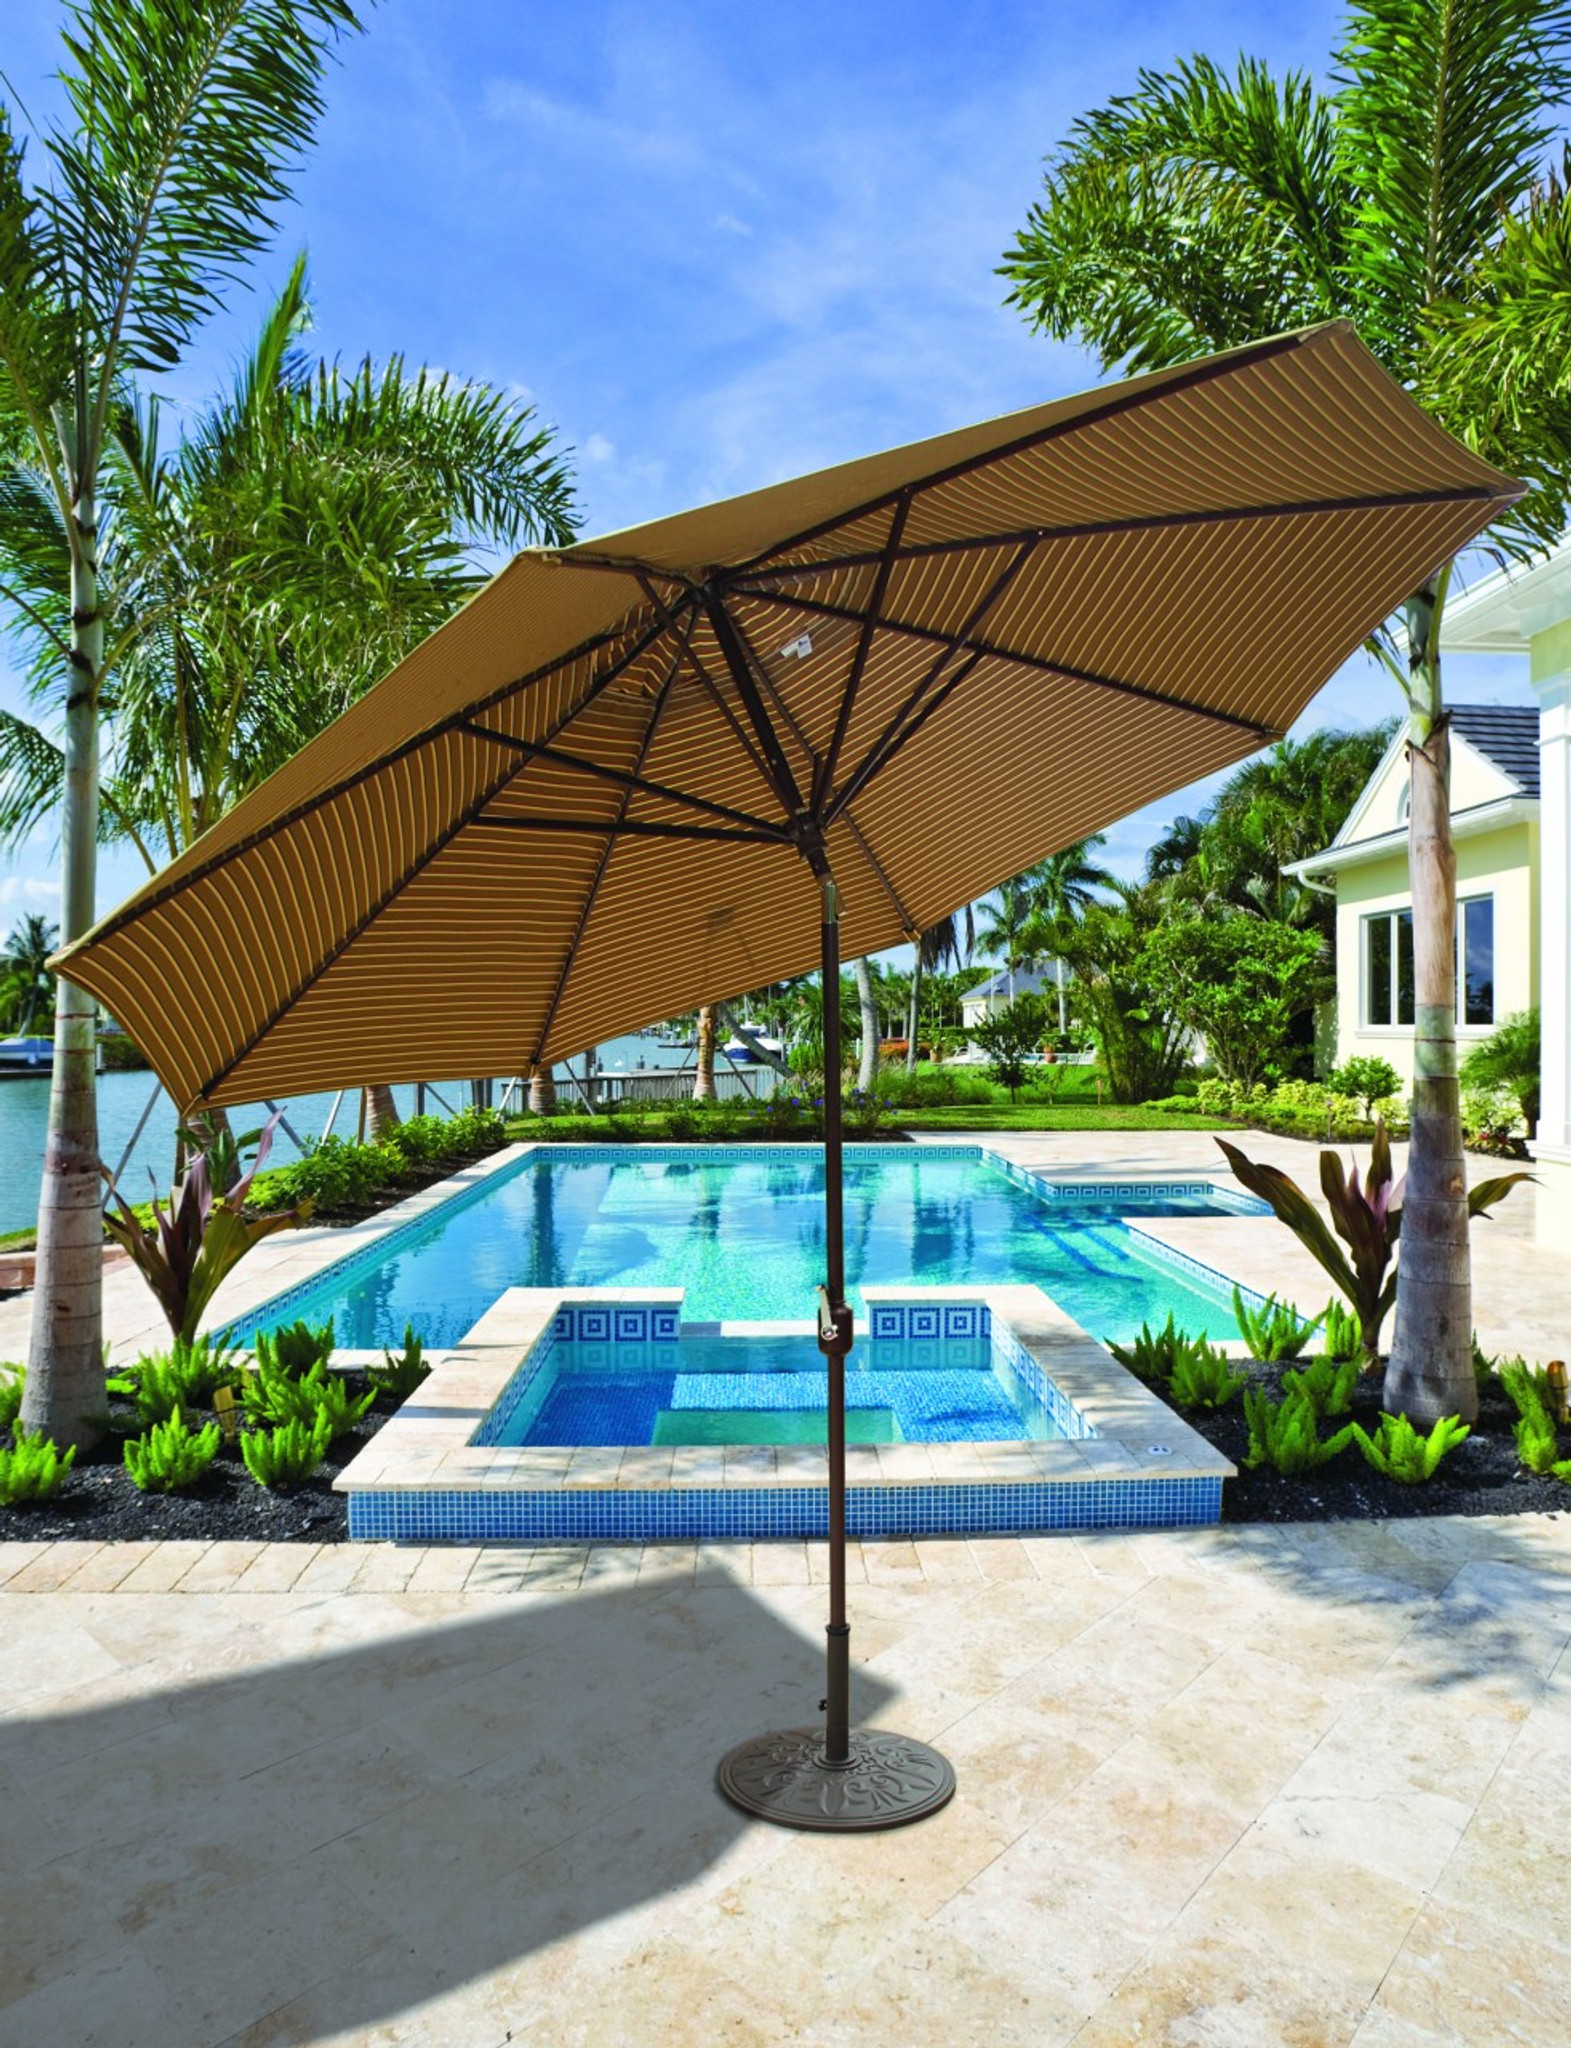 Patio Umbrella Crank Diagram: Galtech 11-ft. Aluminum Umbrella With Autotilt Crank Lift